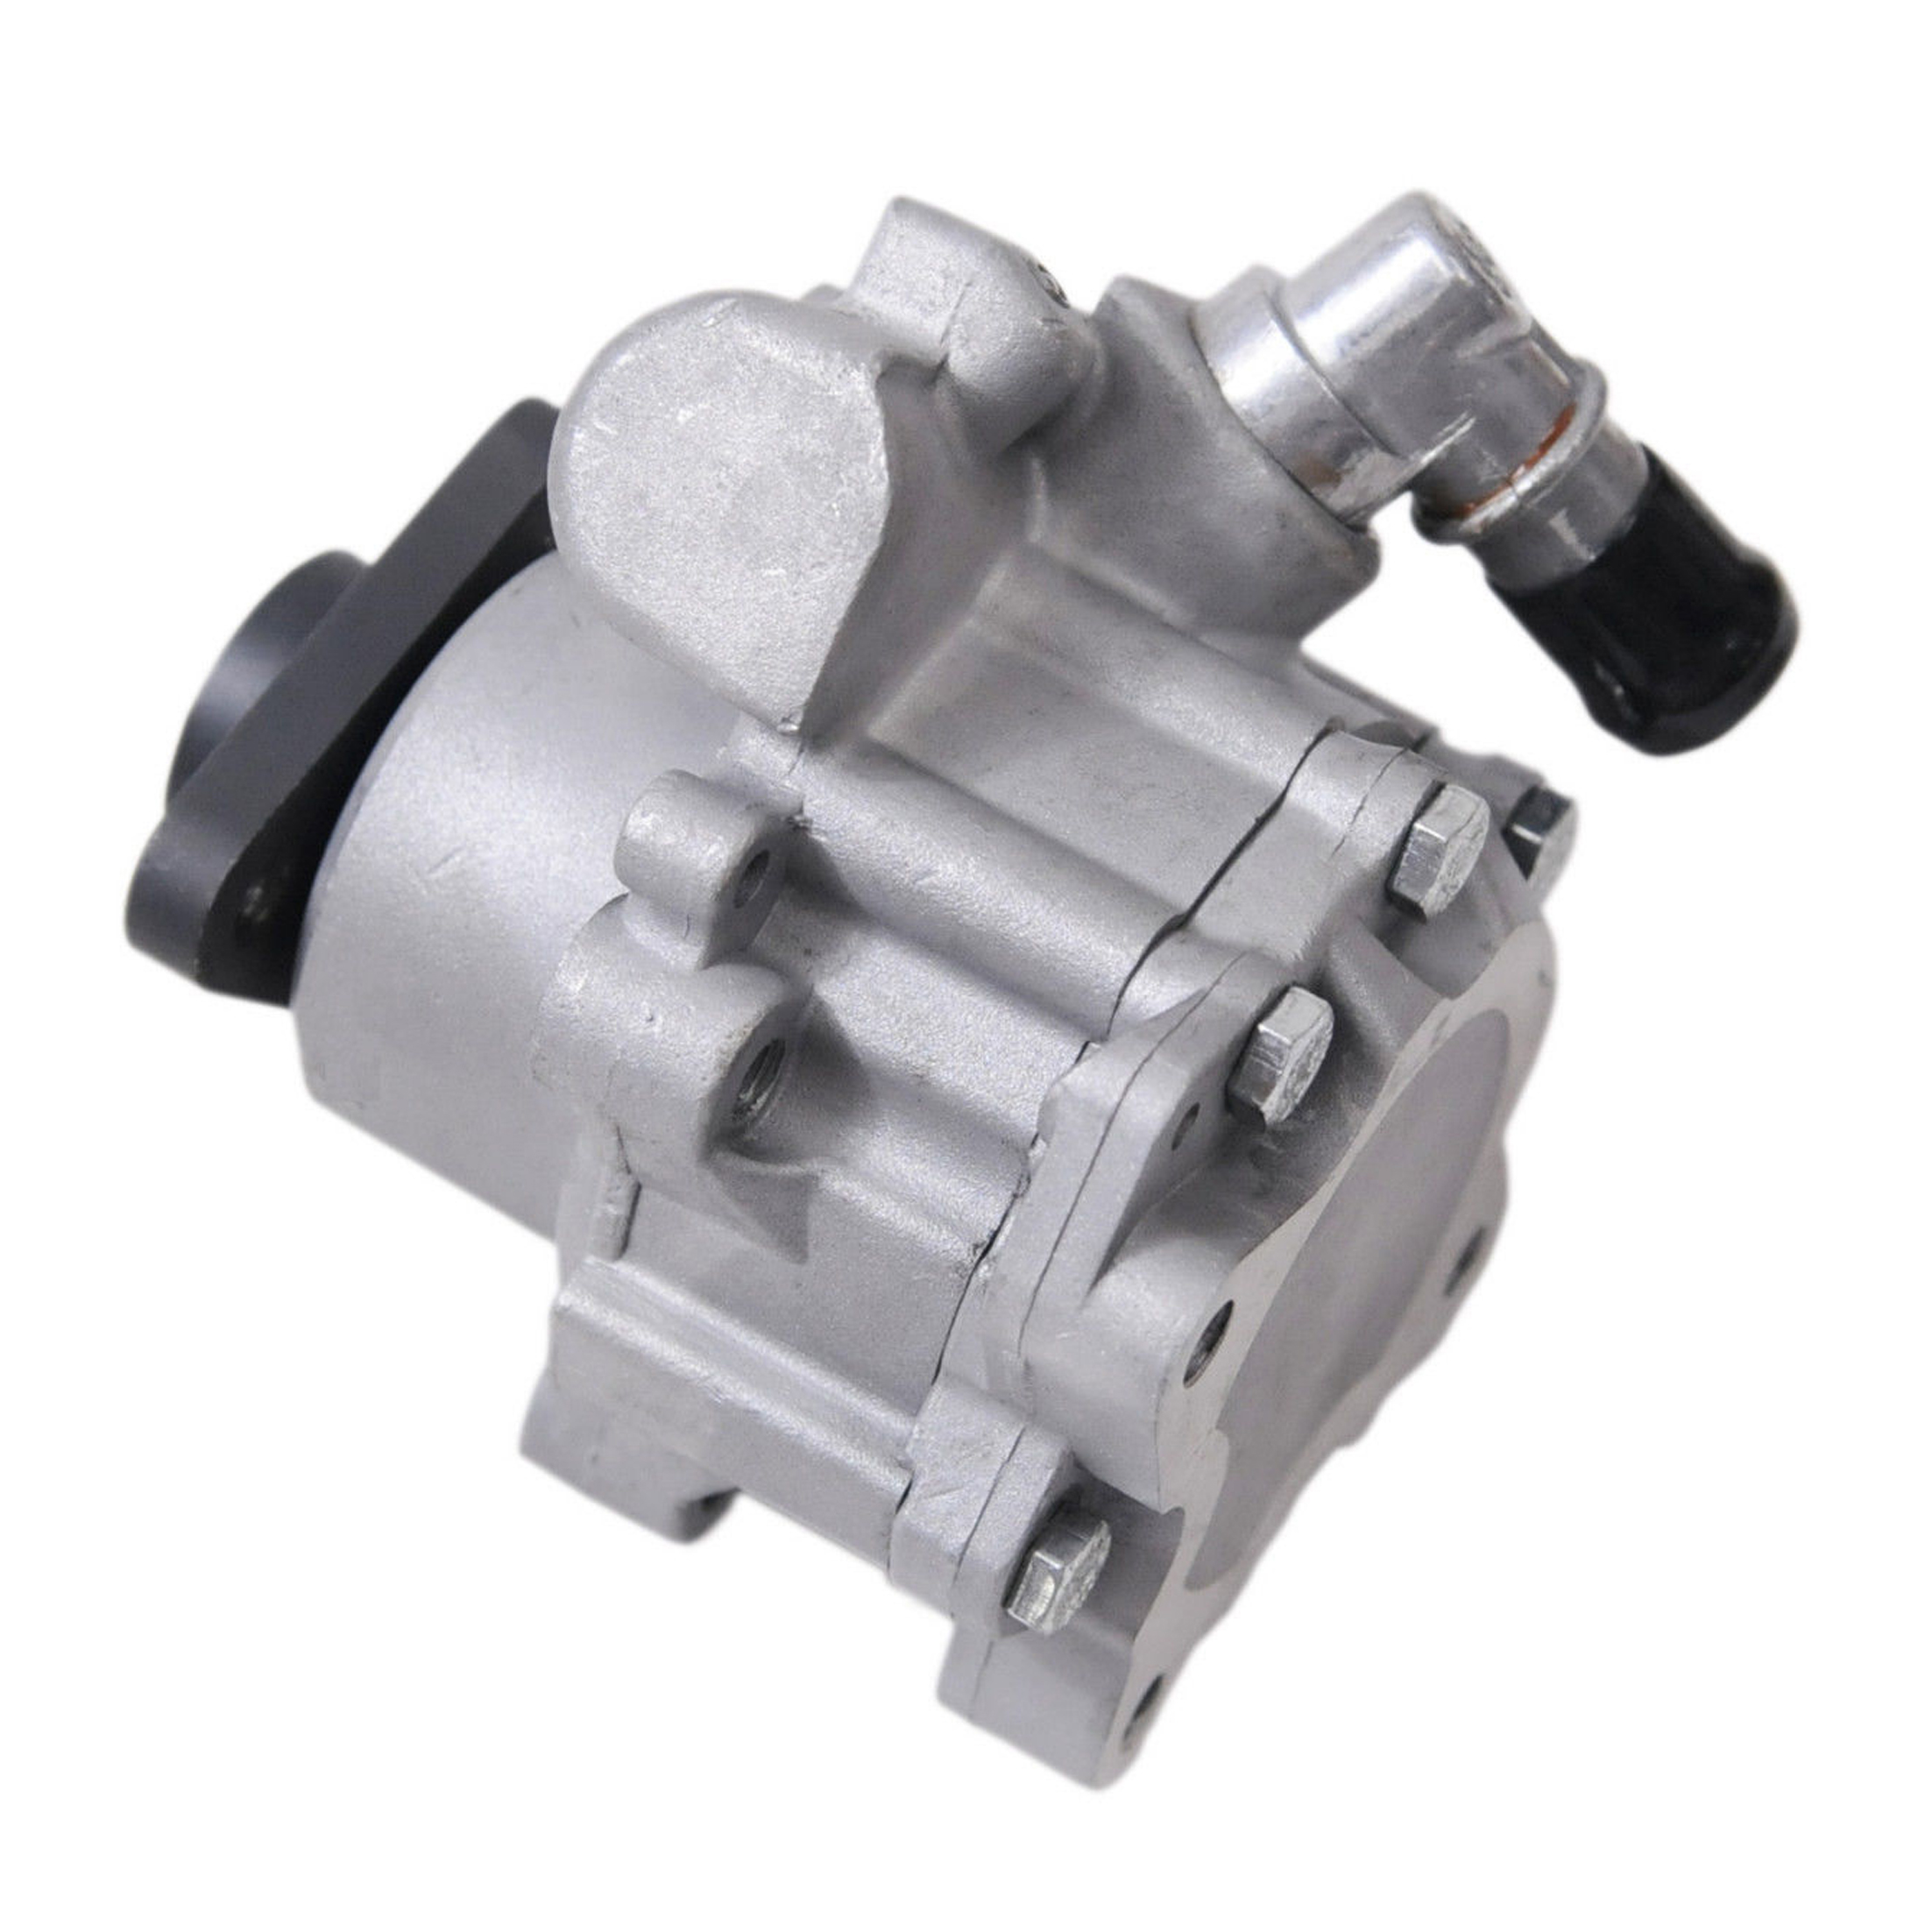 Free Shipping Power Steering Pump For Bmw 330i 320i 325ci 330ci 325i Starter Location Oe 21 5310 32416756582 32411093577 32416753274 In Distributors Parts From